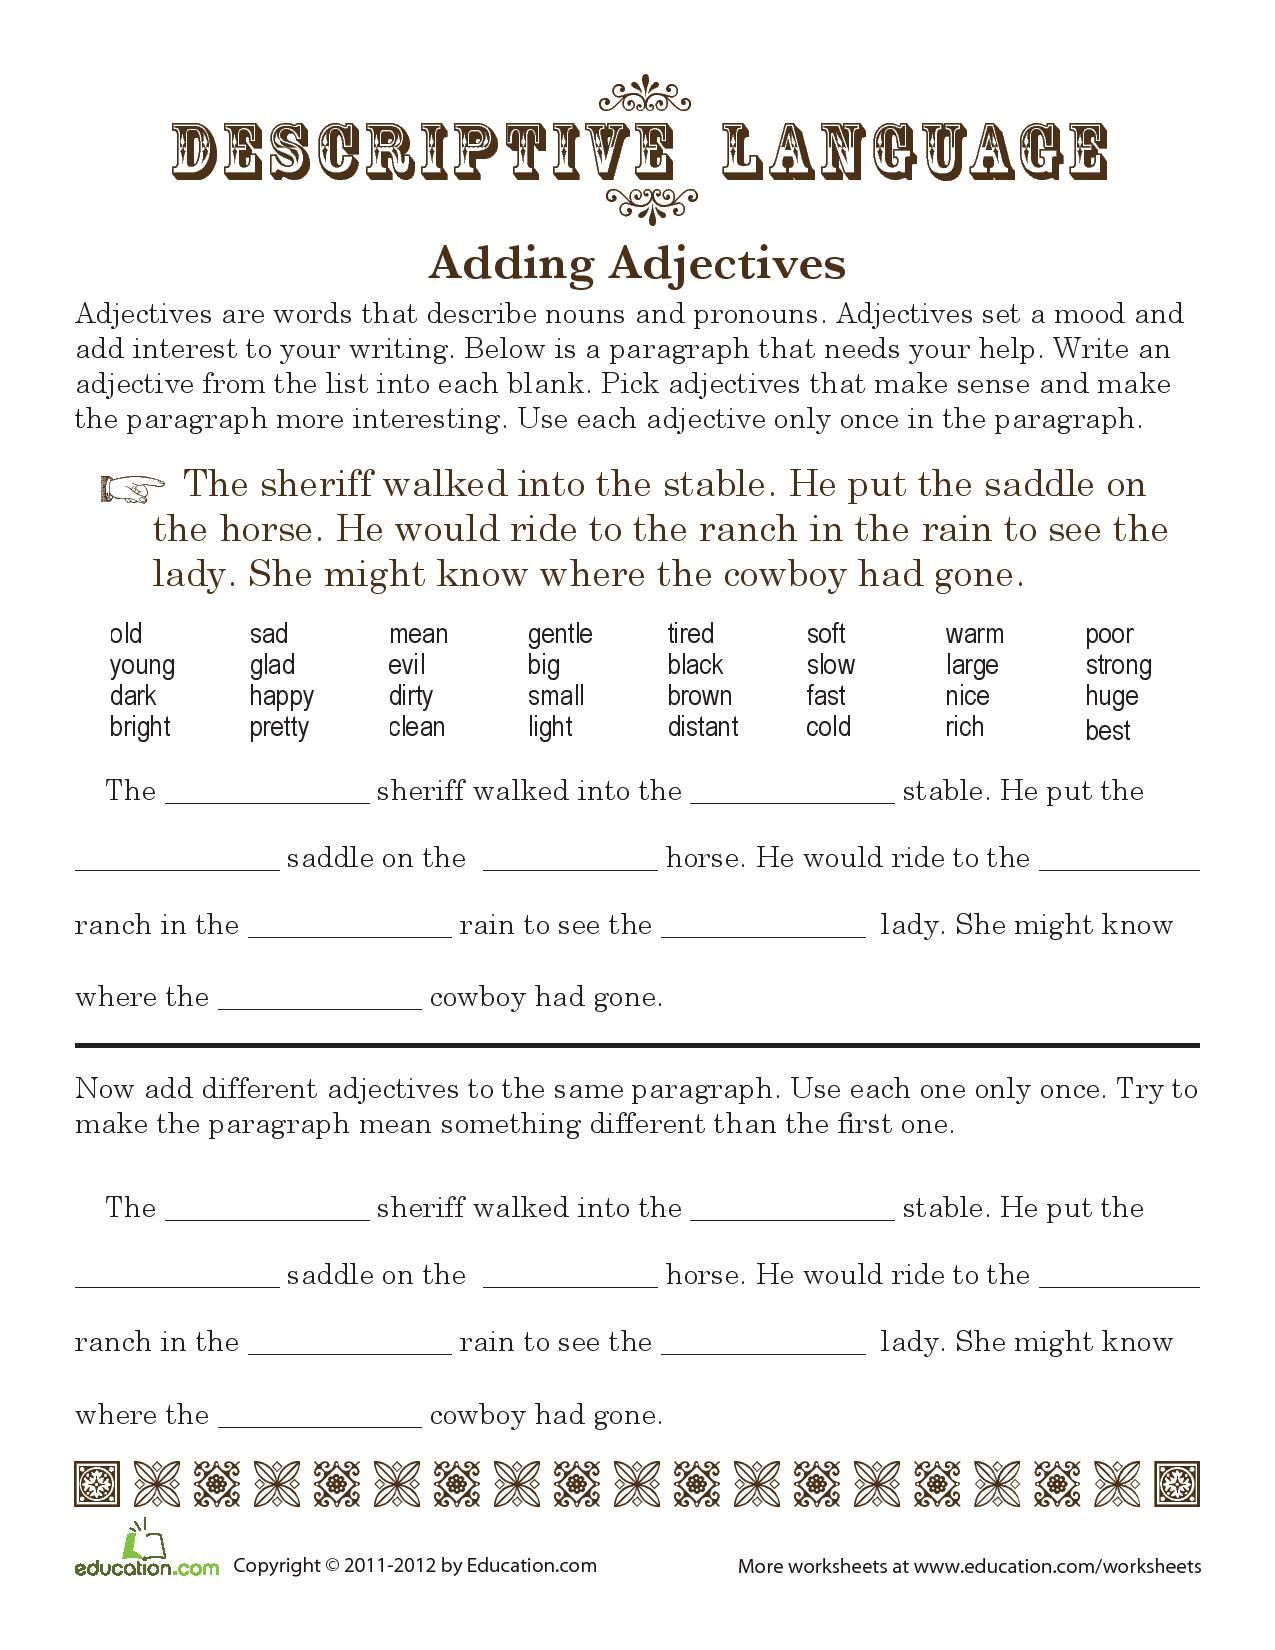 hight resolution of Time to saddle up some adjectives! Descriptive language adds interest to  writing for fifth graders.   Adjectives